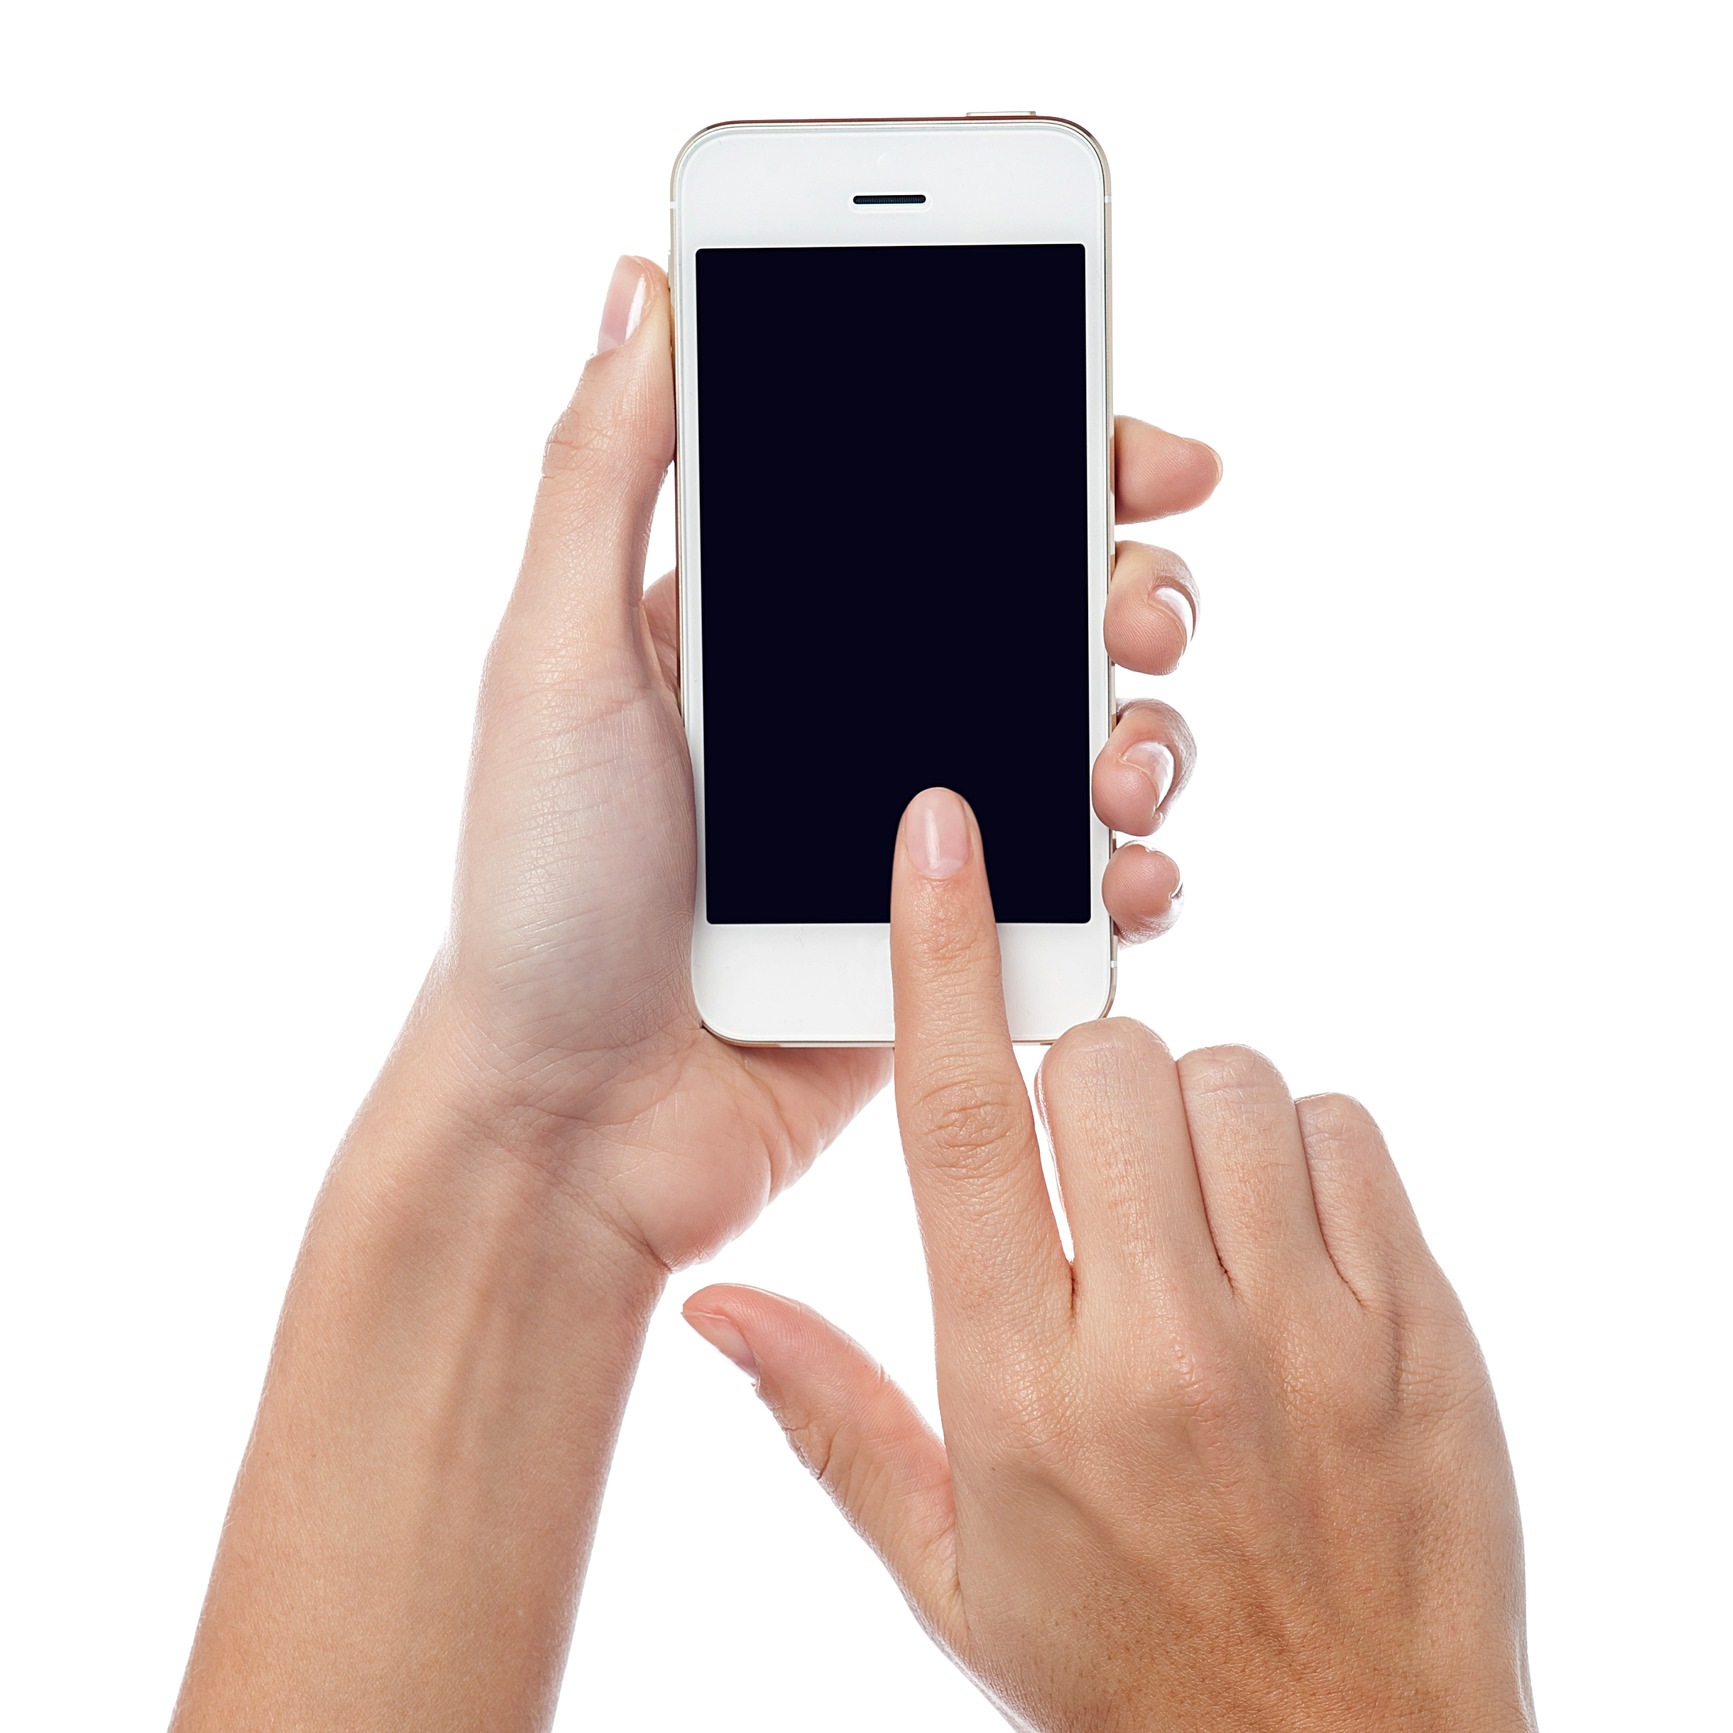 cell phone no hand phone Everbuying offers cell phones online, you can get 4g smartphones, wholesale watch phones, latest android phones and cheap phones at wholesale prices plus free shipping worldwide.